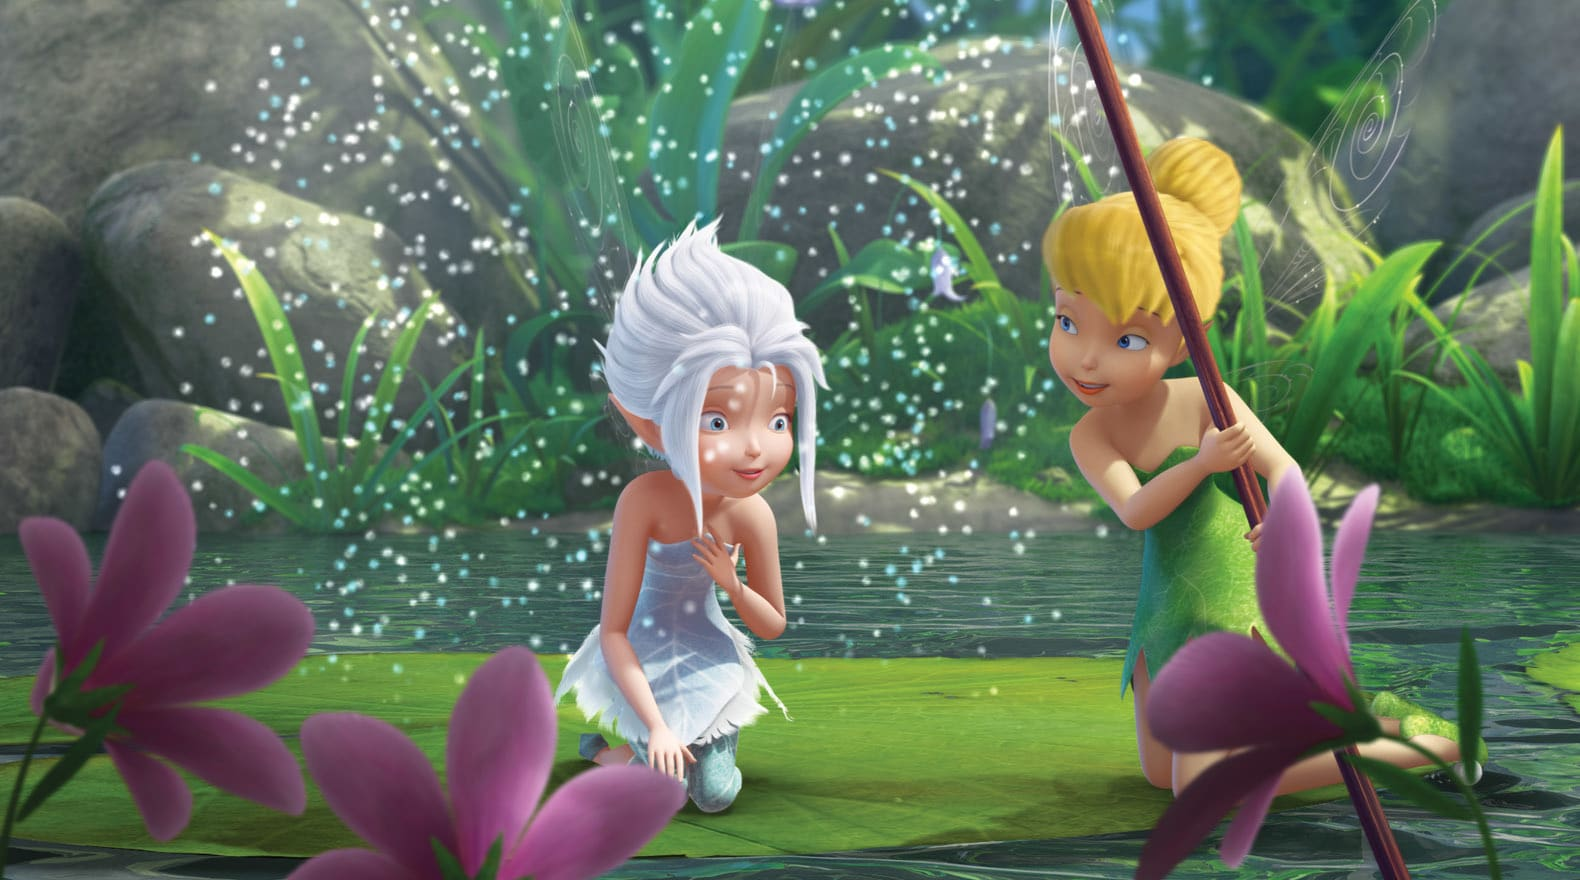 Periwinkle visits the warm side of Pixie Hollow with a little help from Tink.